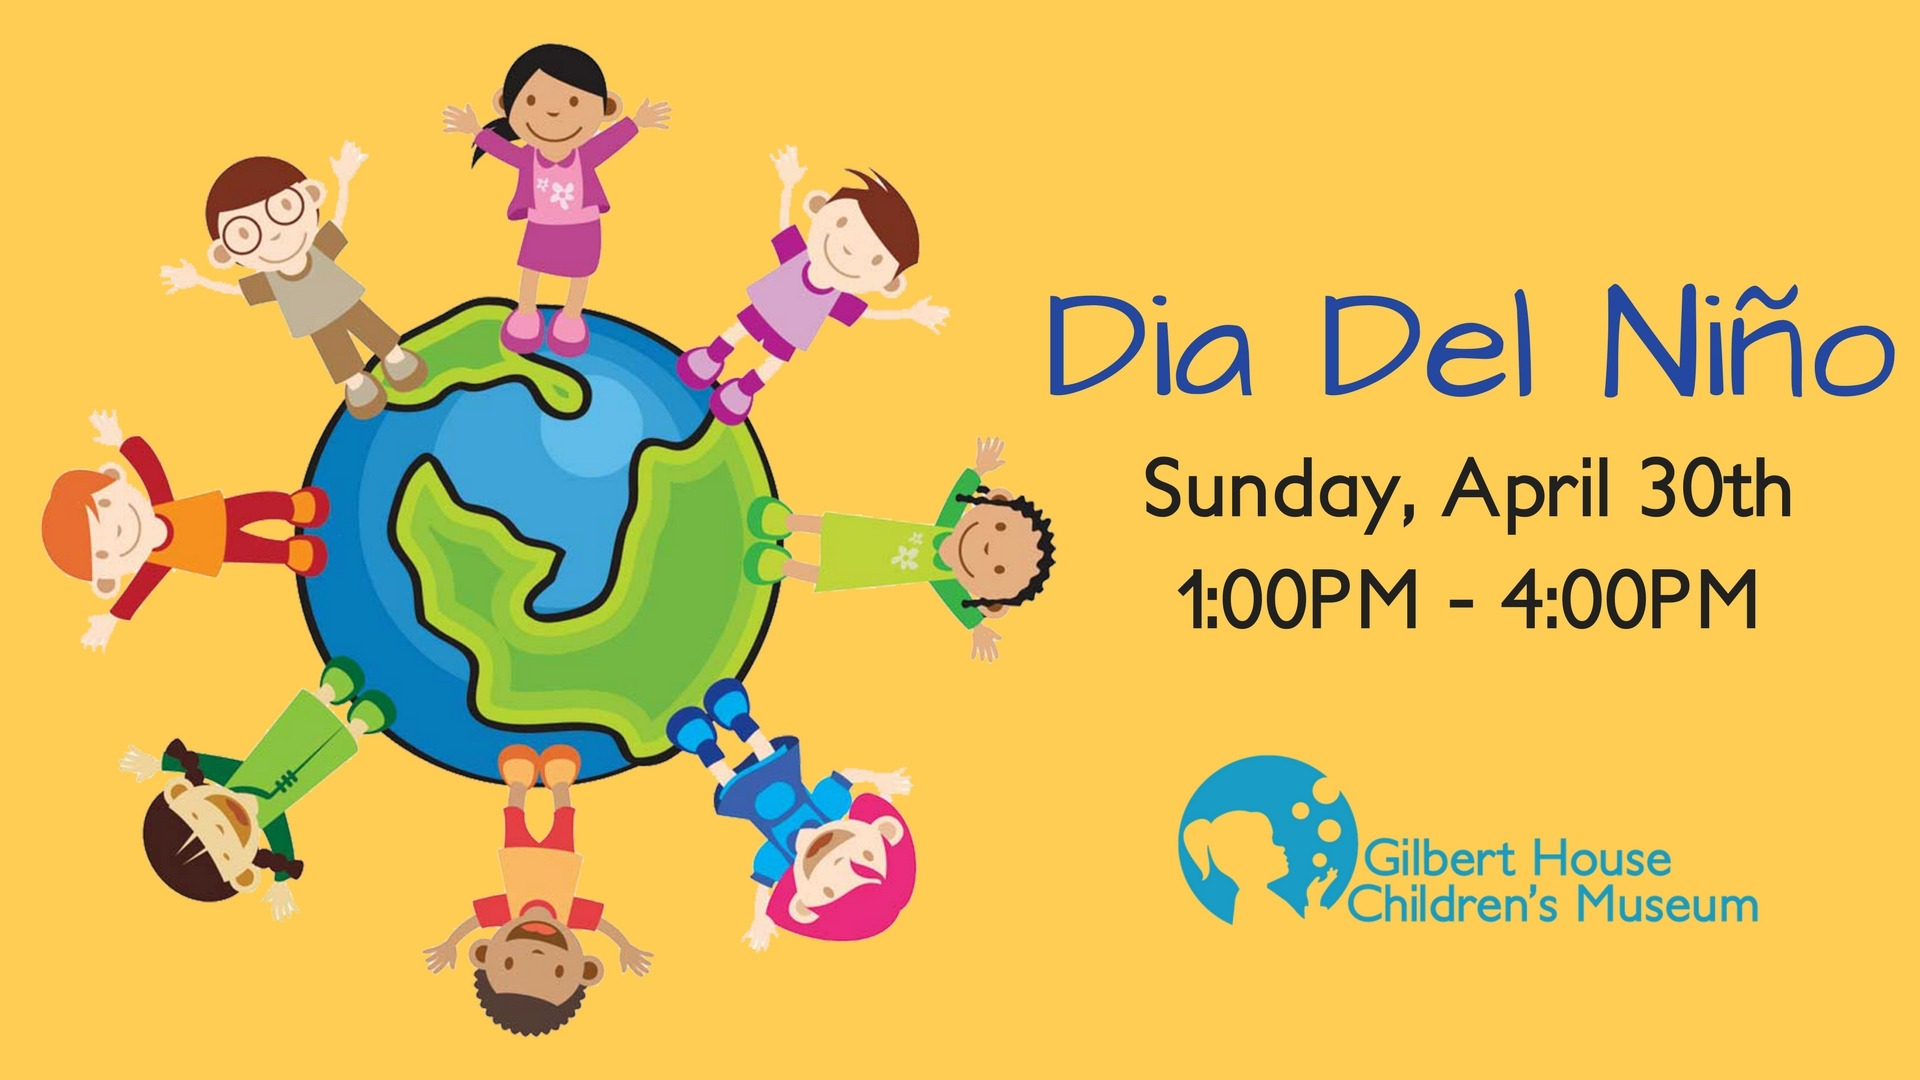 Copy of Dia Del Niño FB event